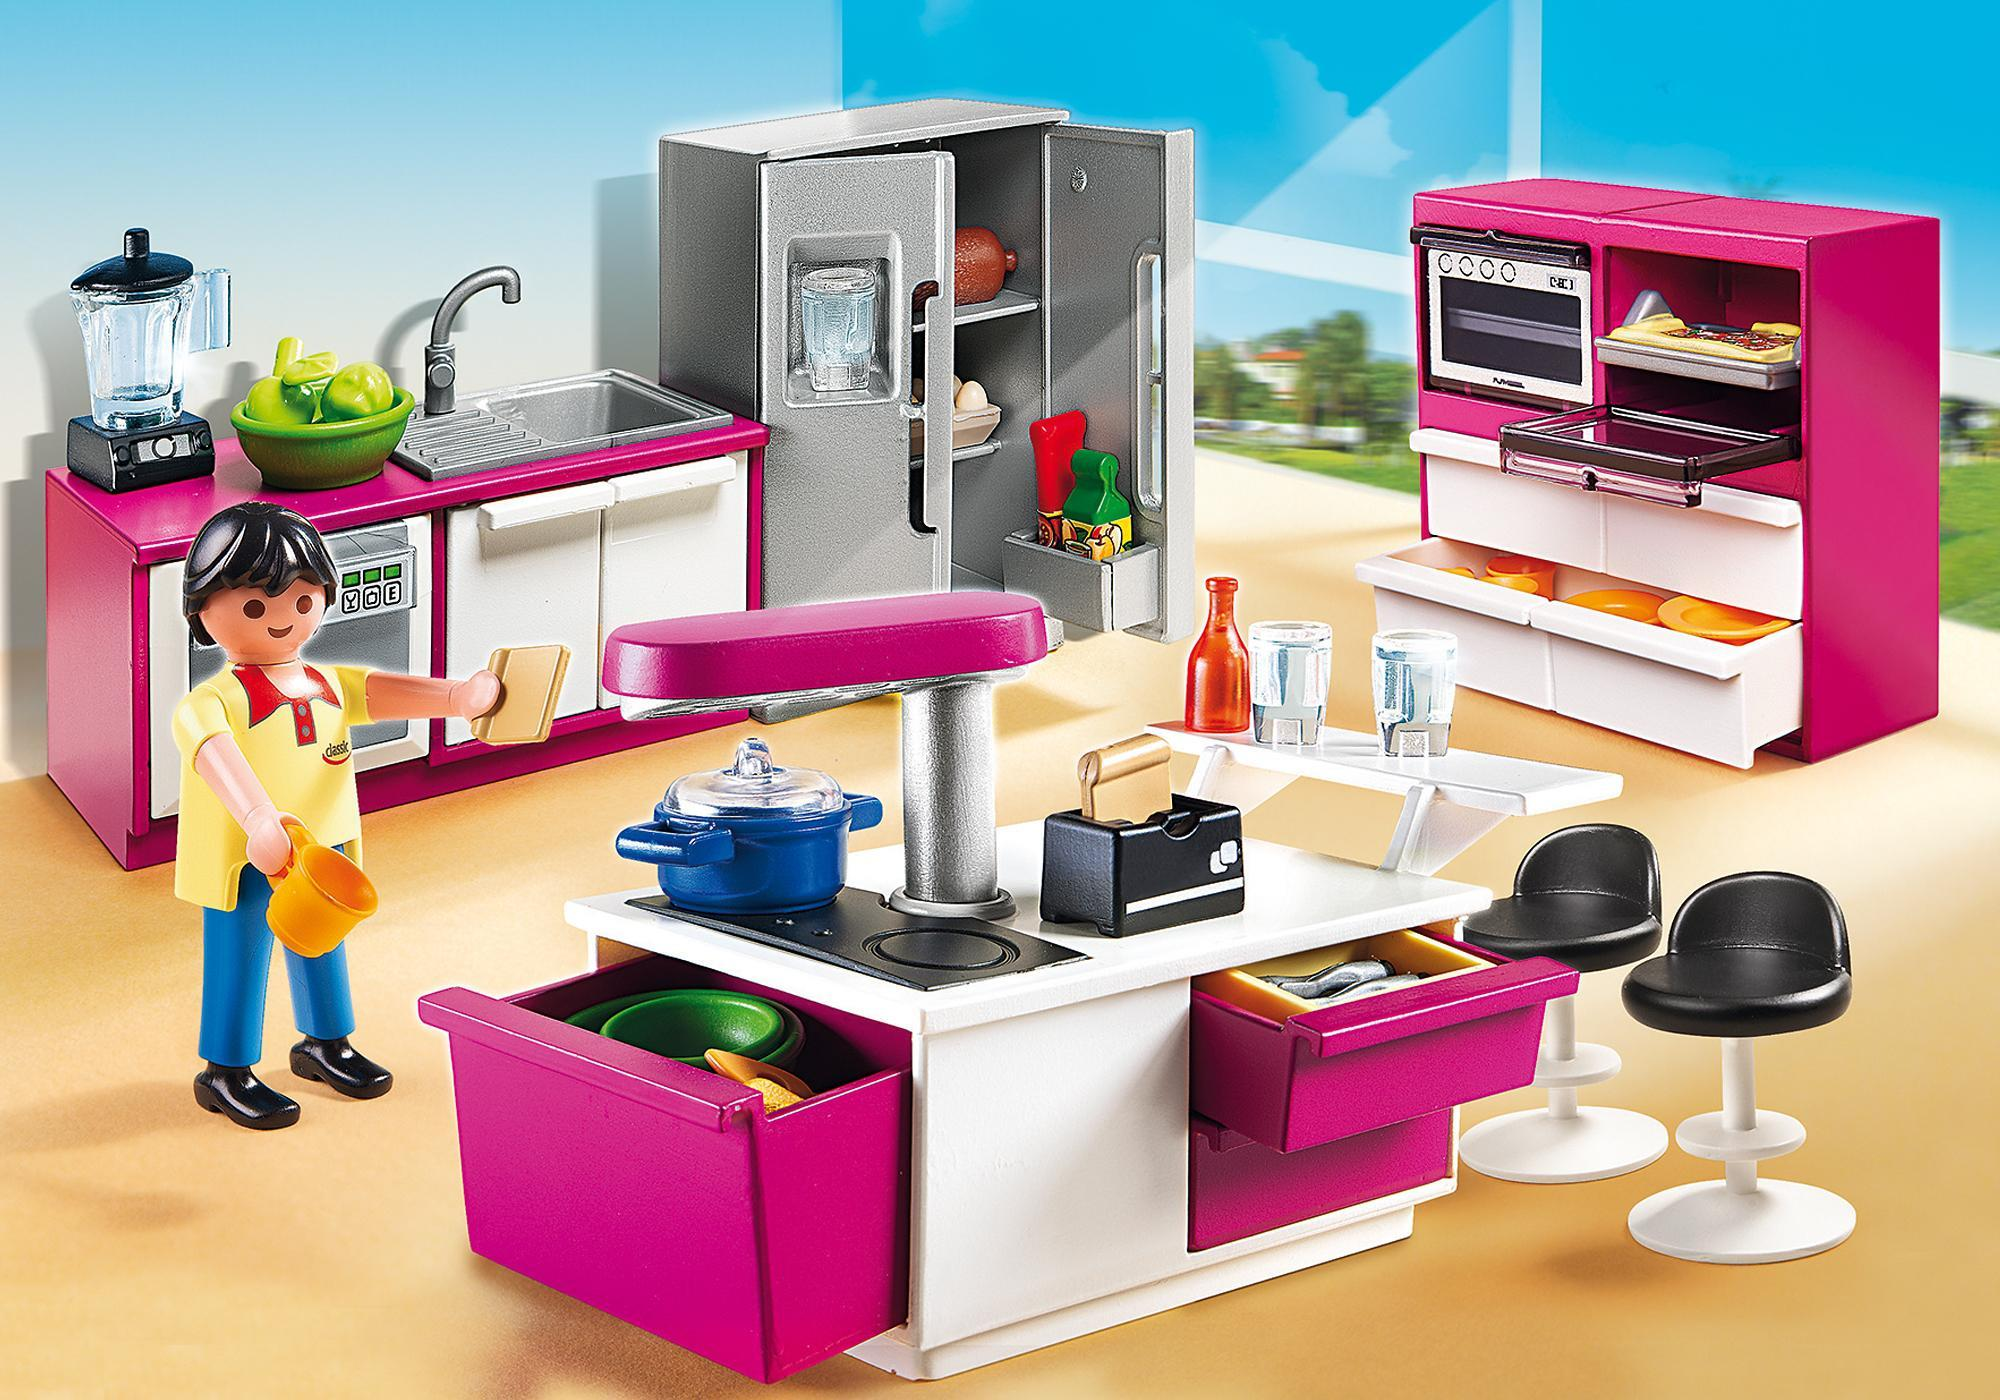 http://media.playmobil.com/i/playmobil/5582_product_detail